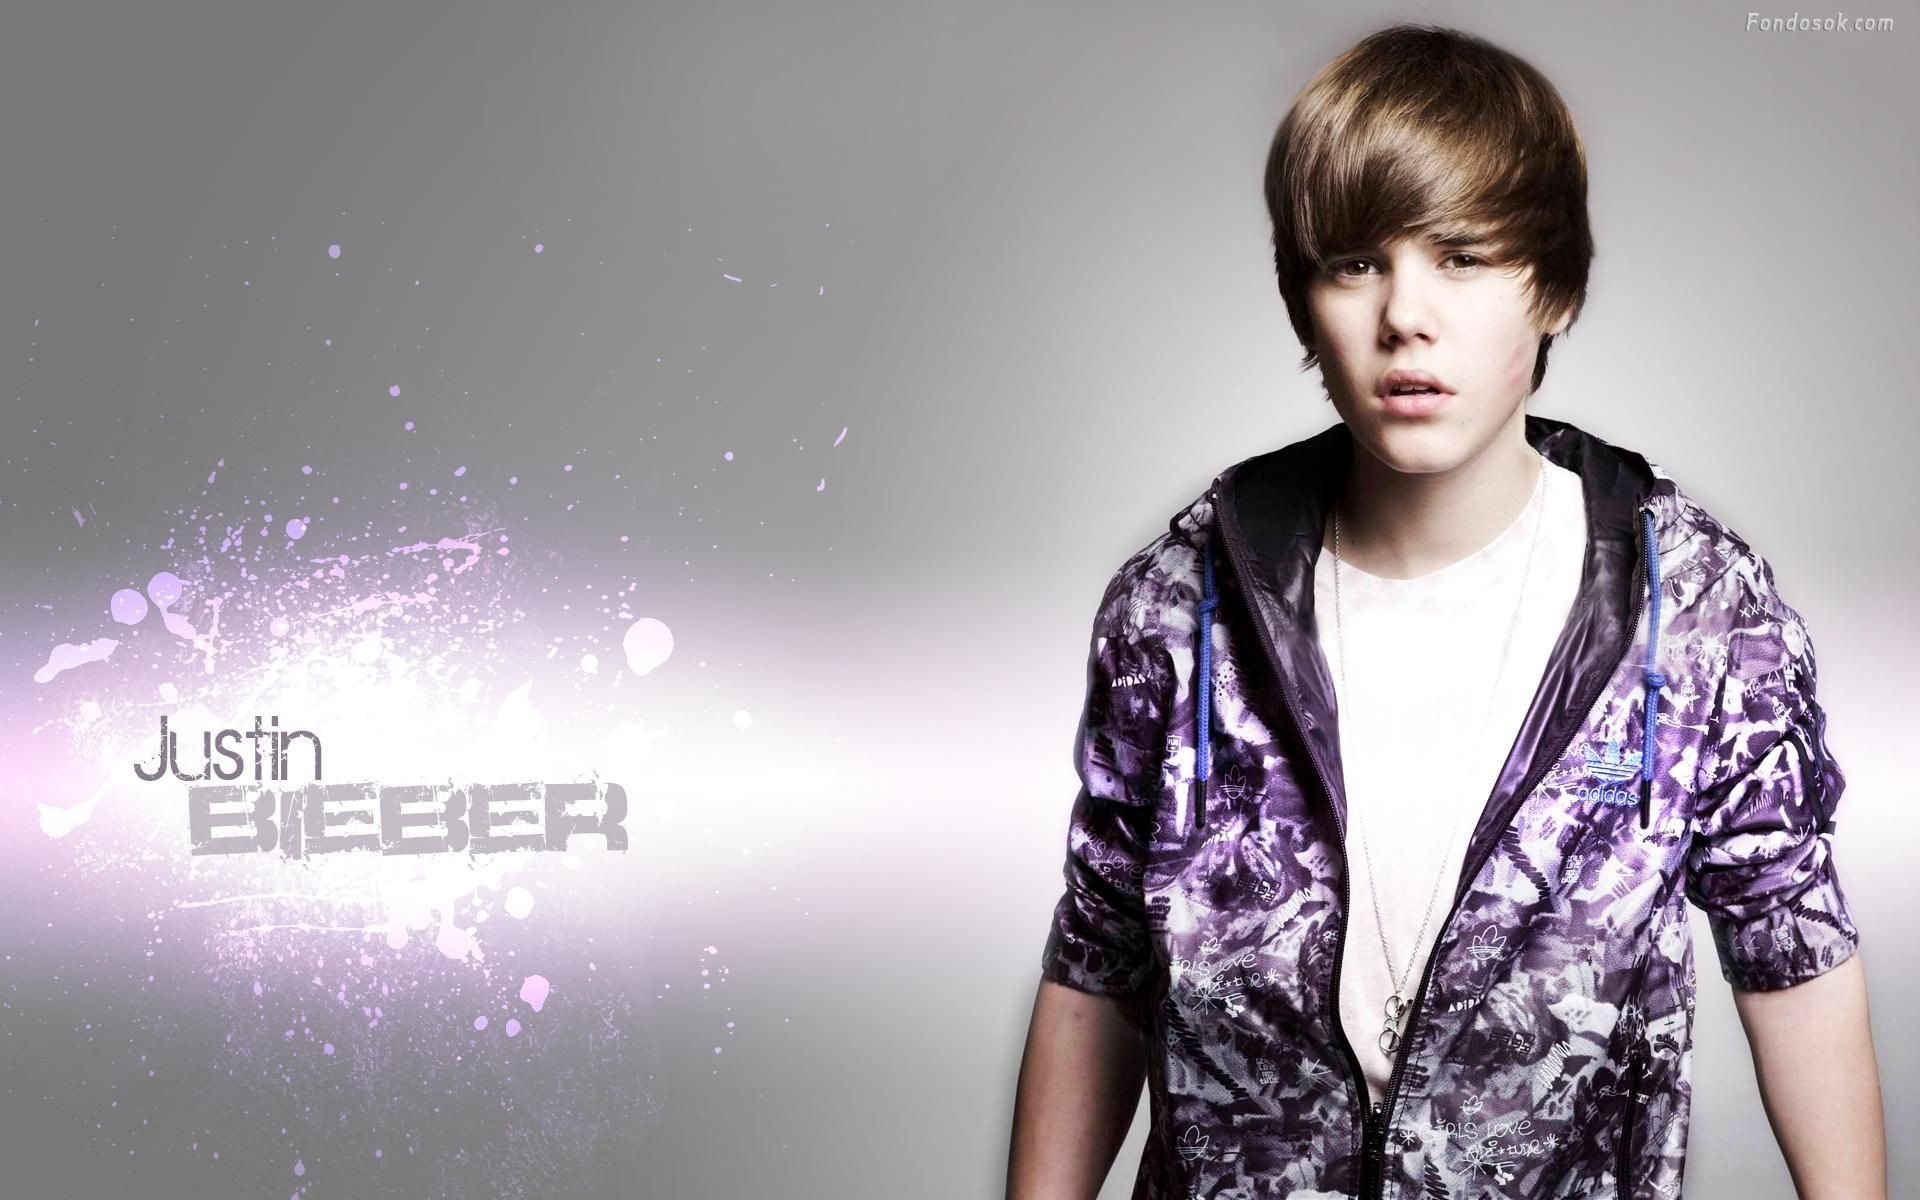 1920x1200 Justin Bieber Wallpapers Desktop #h3033636, 222.54 Kb